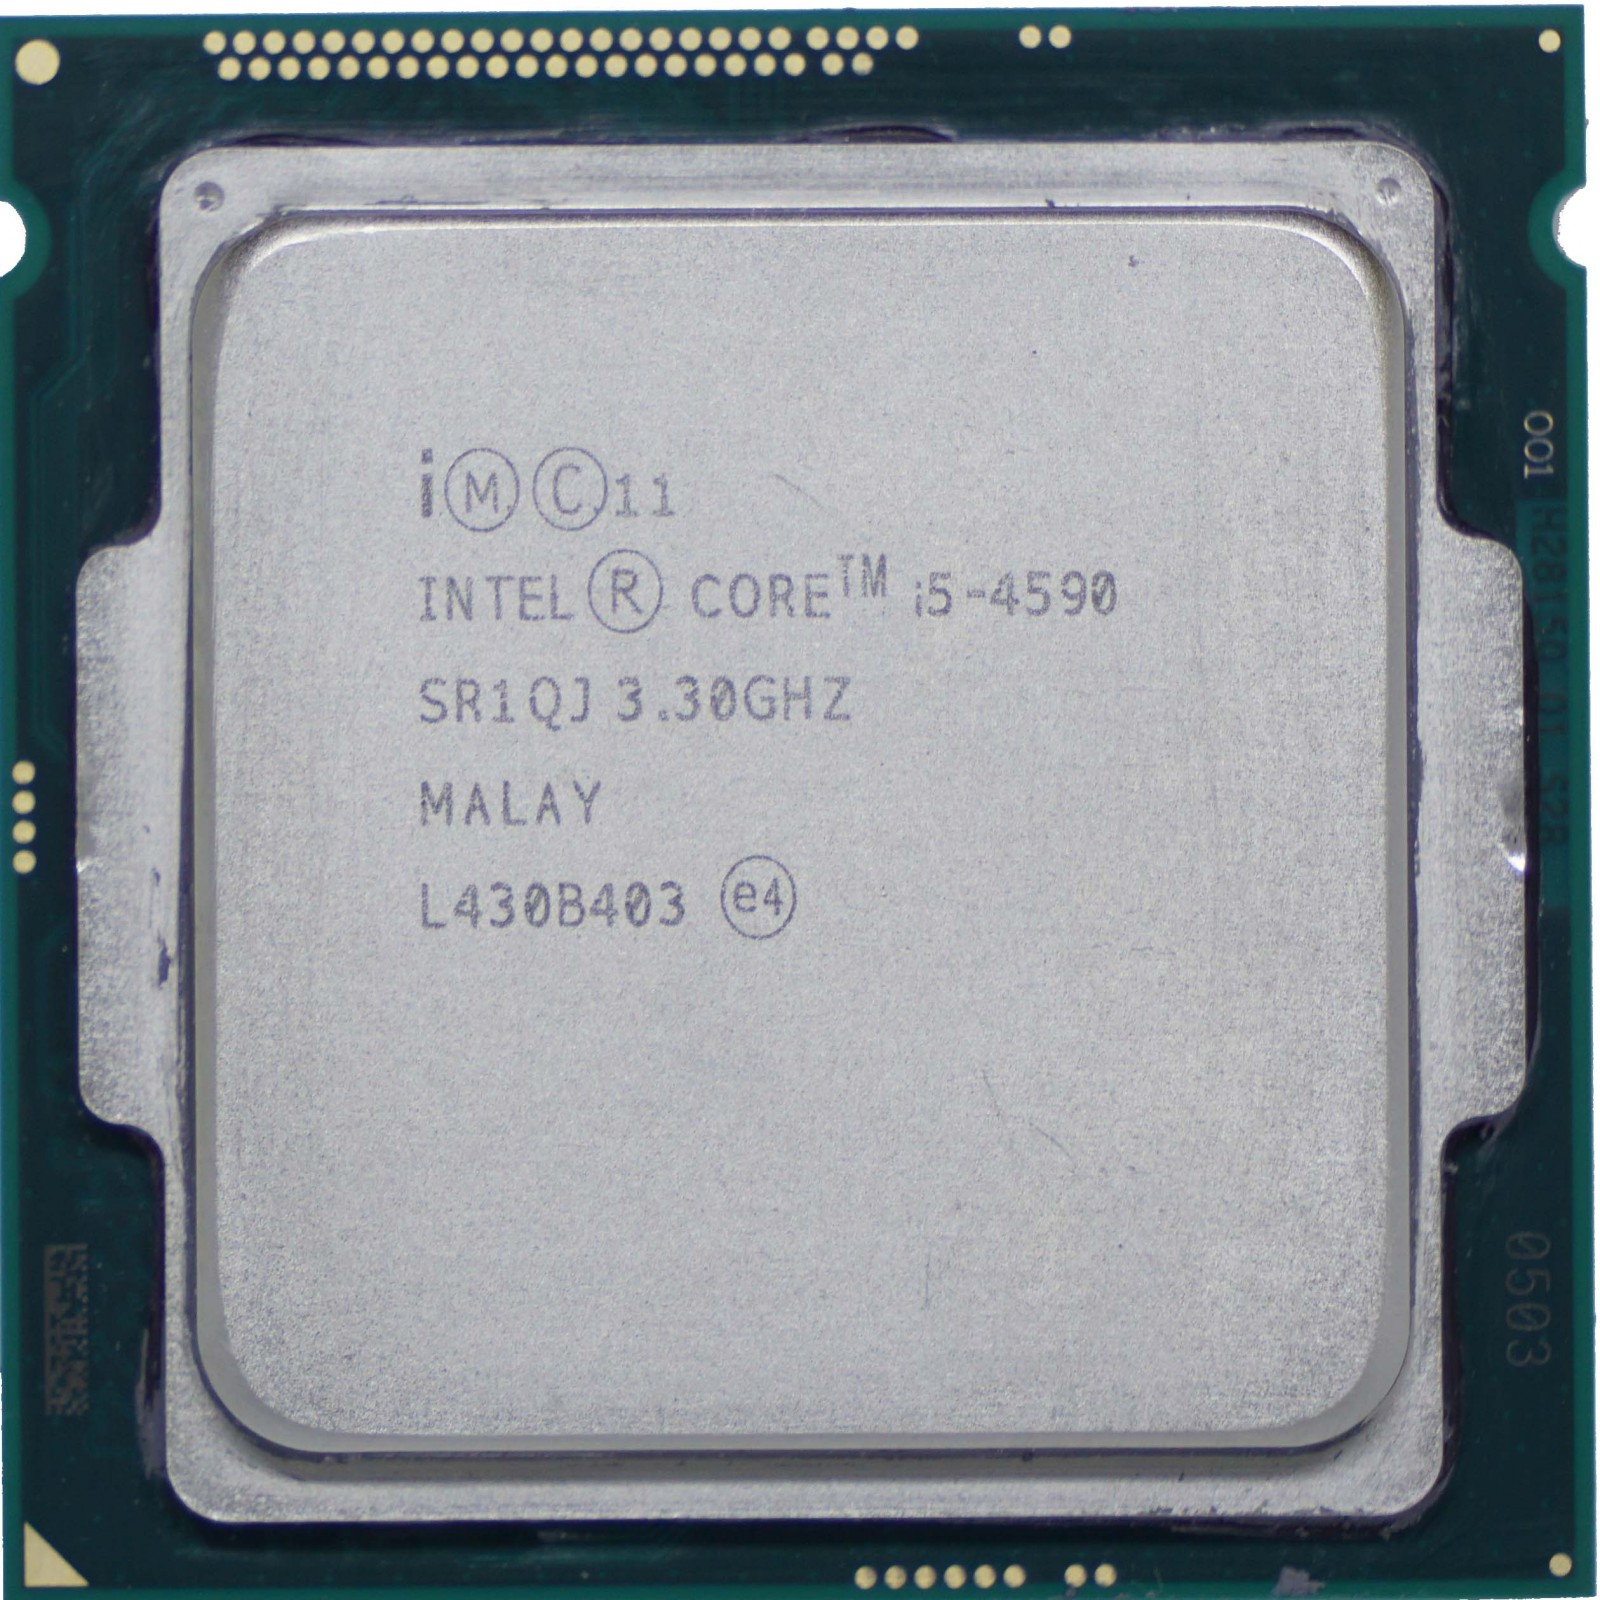 Procesor Intel Core i5-4590 3.30GHz, 6MB Cache, Intel HD Graphics 4600